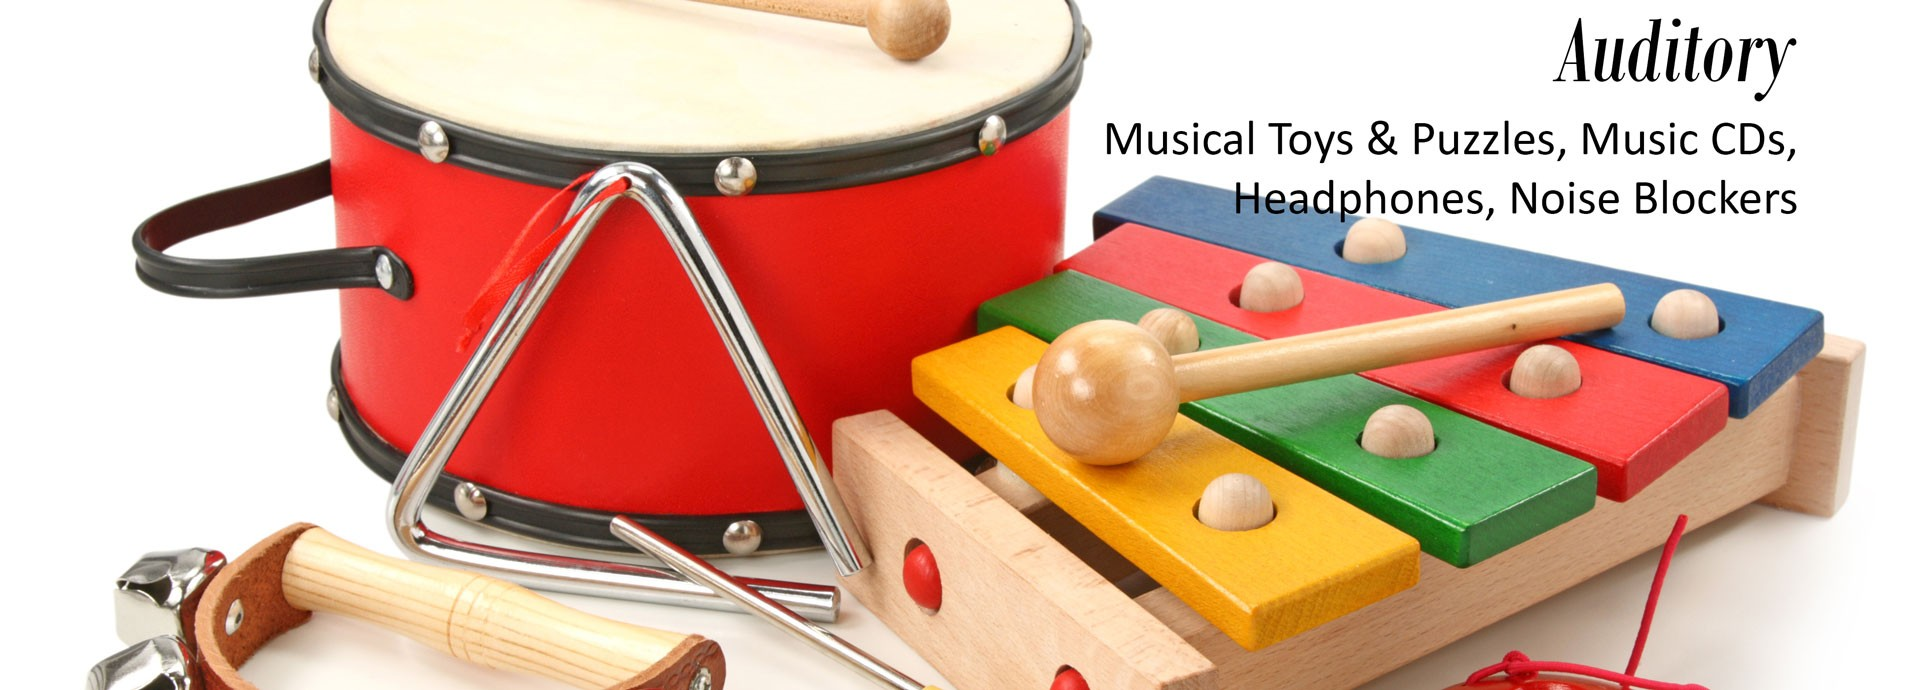 Auditory: Musical Toys & Puzzles, Music CDs, Headphones, Noise Blockers